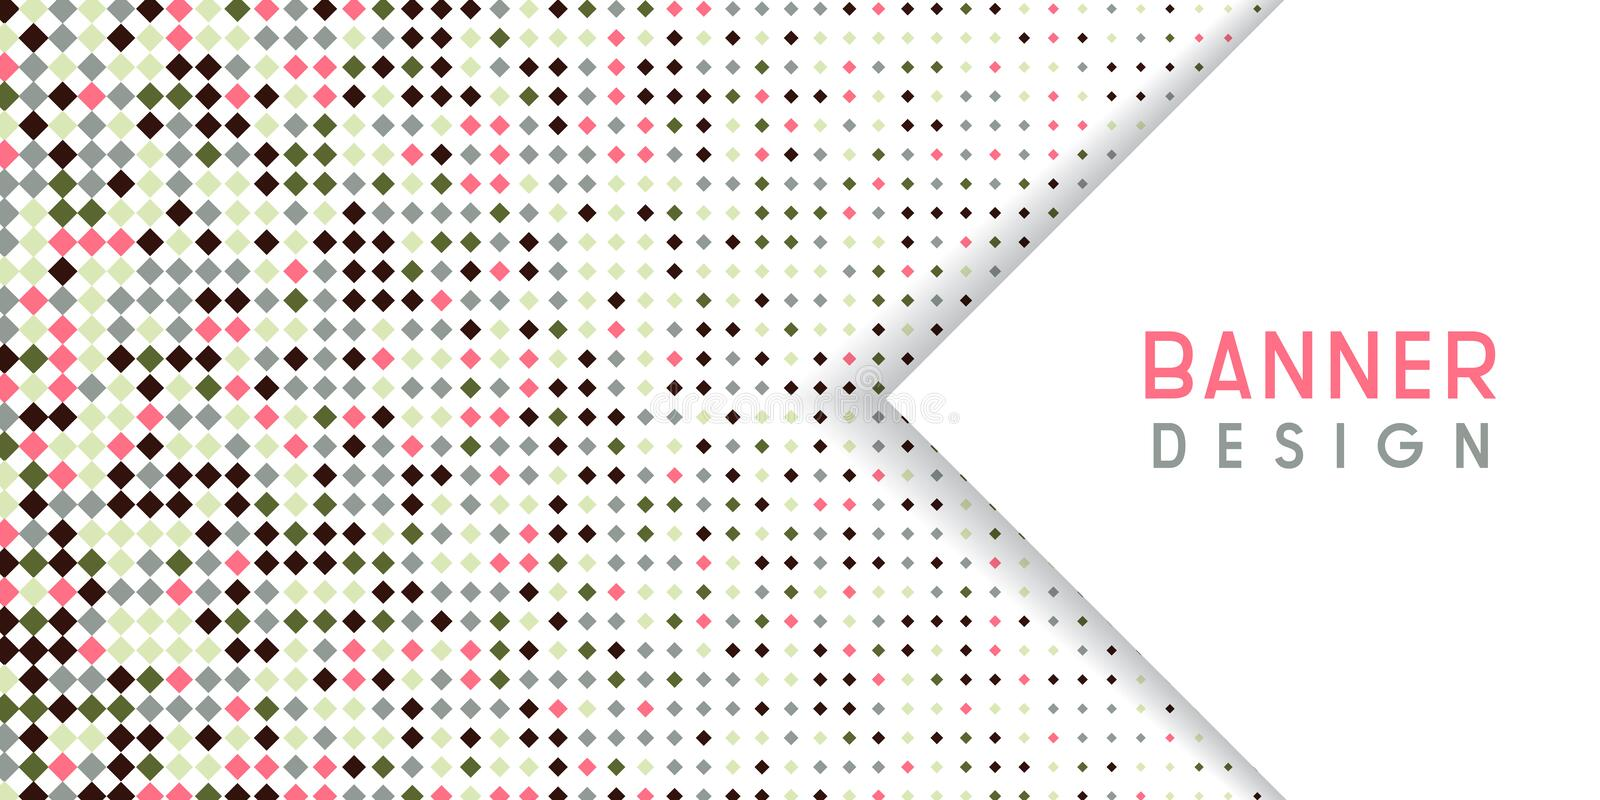 Abstract banner background with diamond halftone design vector illustration